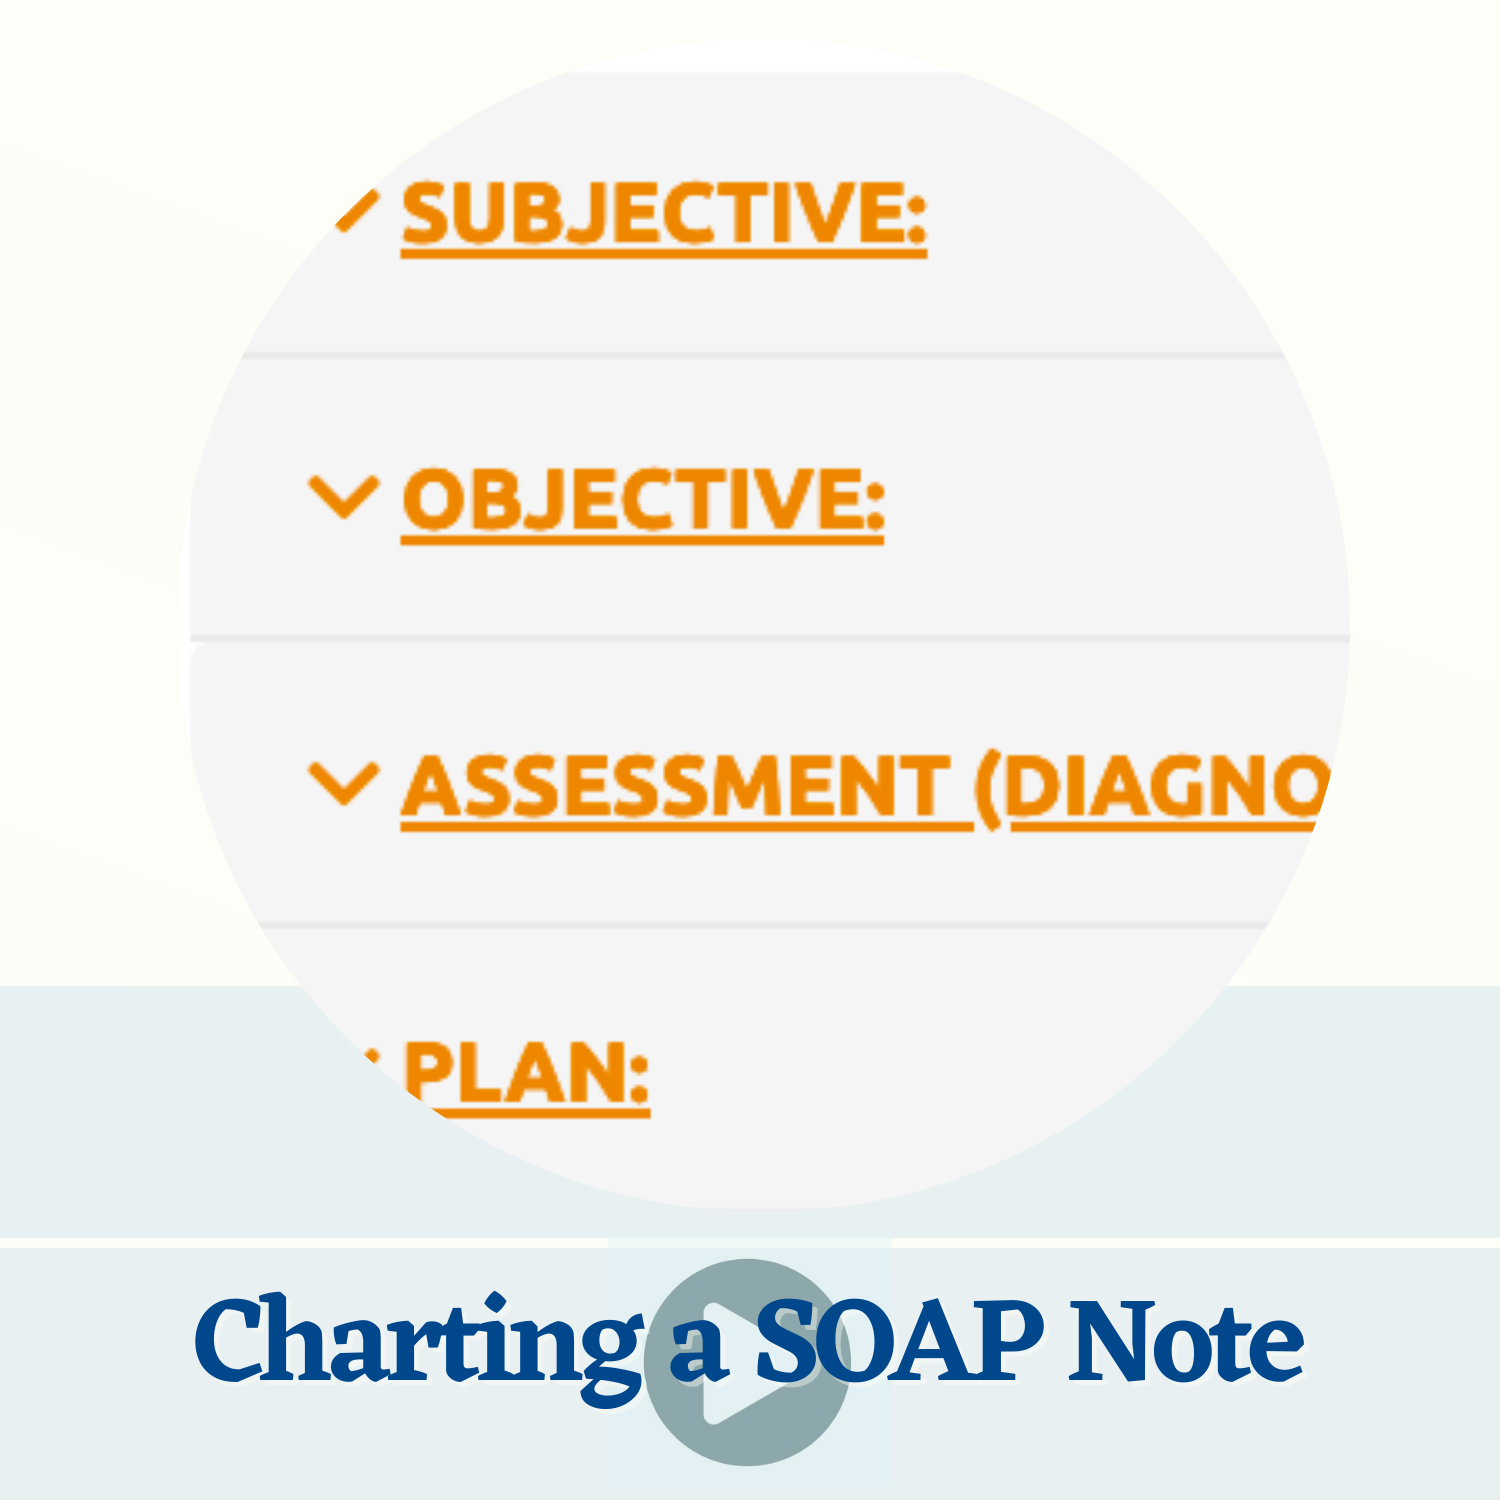 Charting SOAP Note